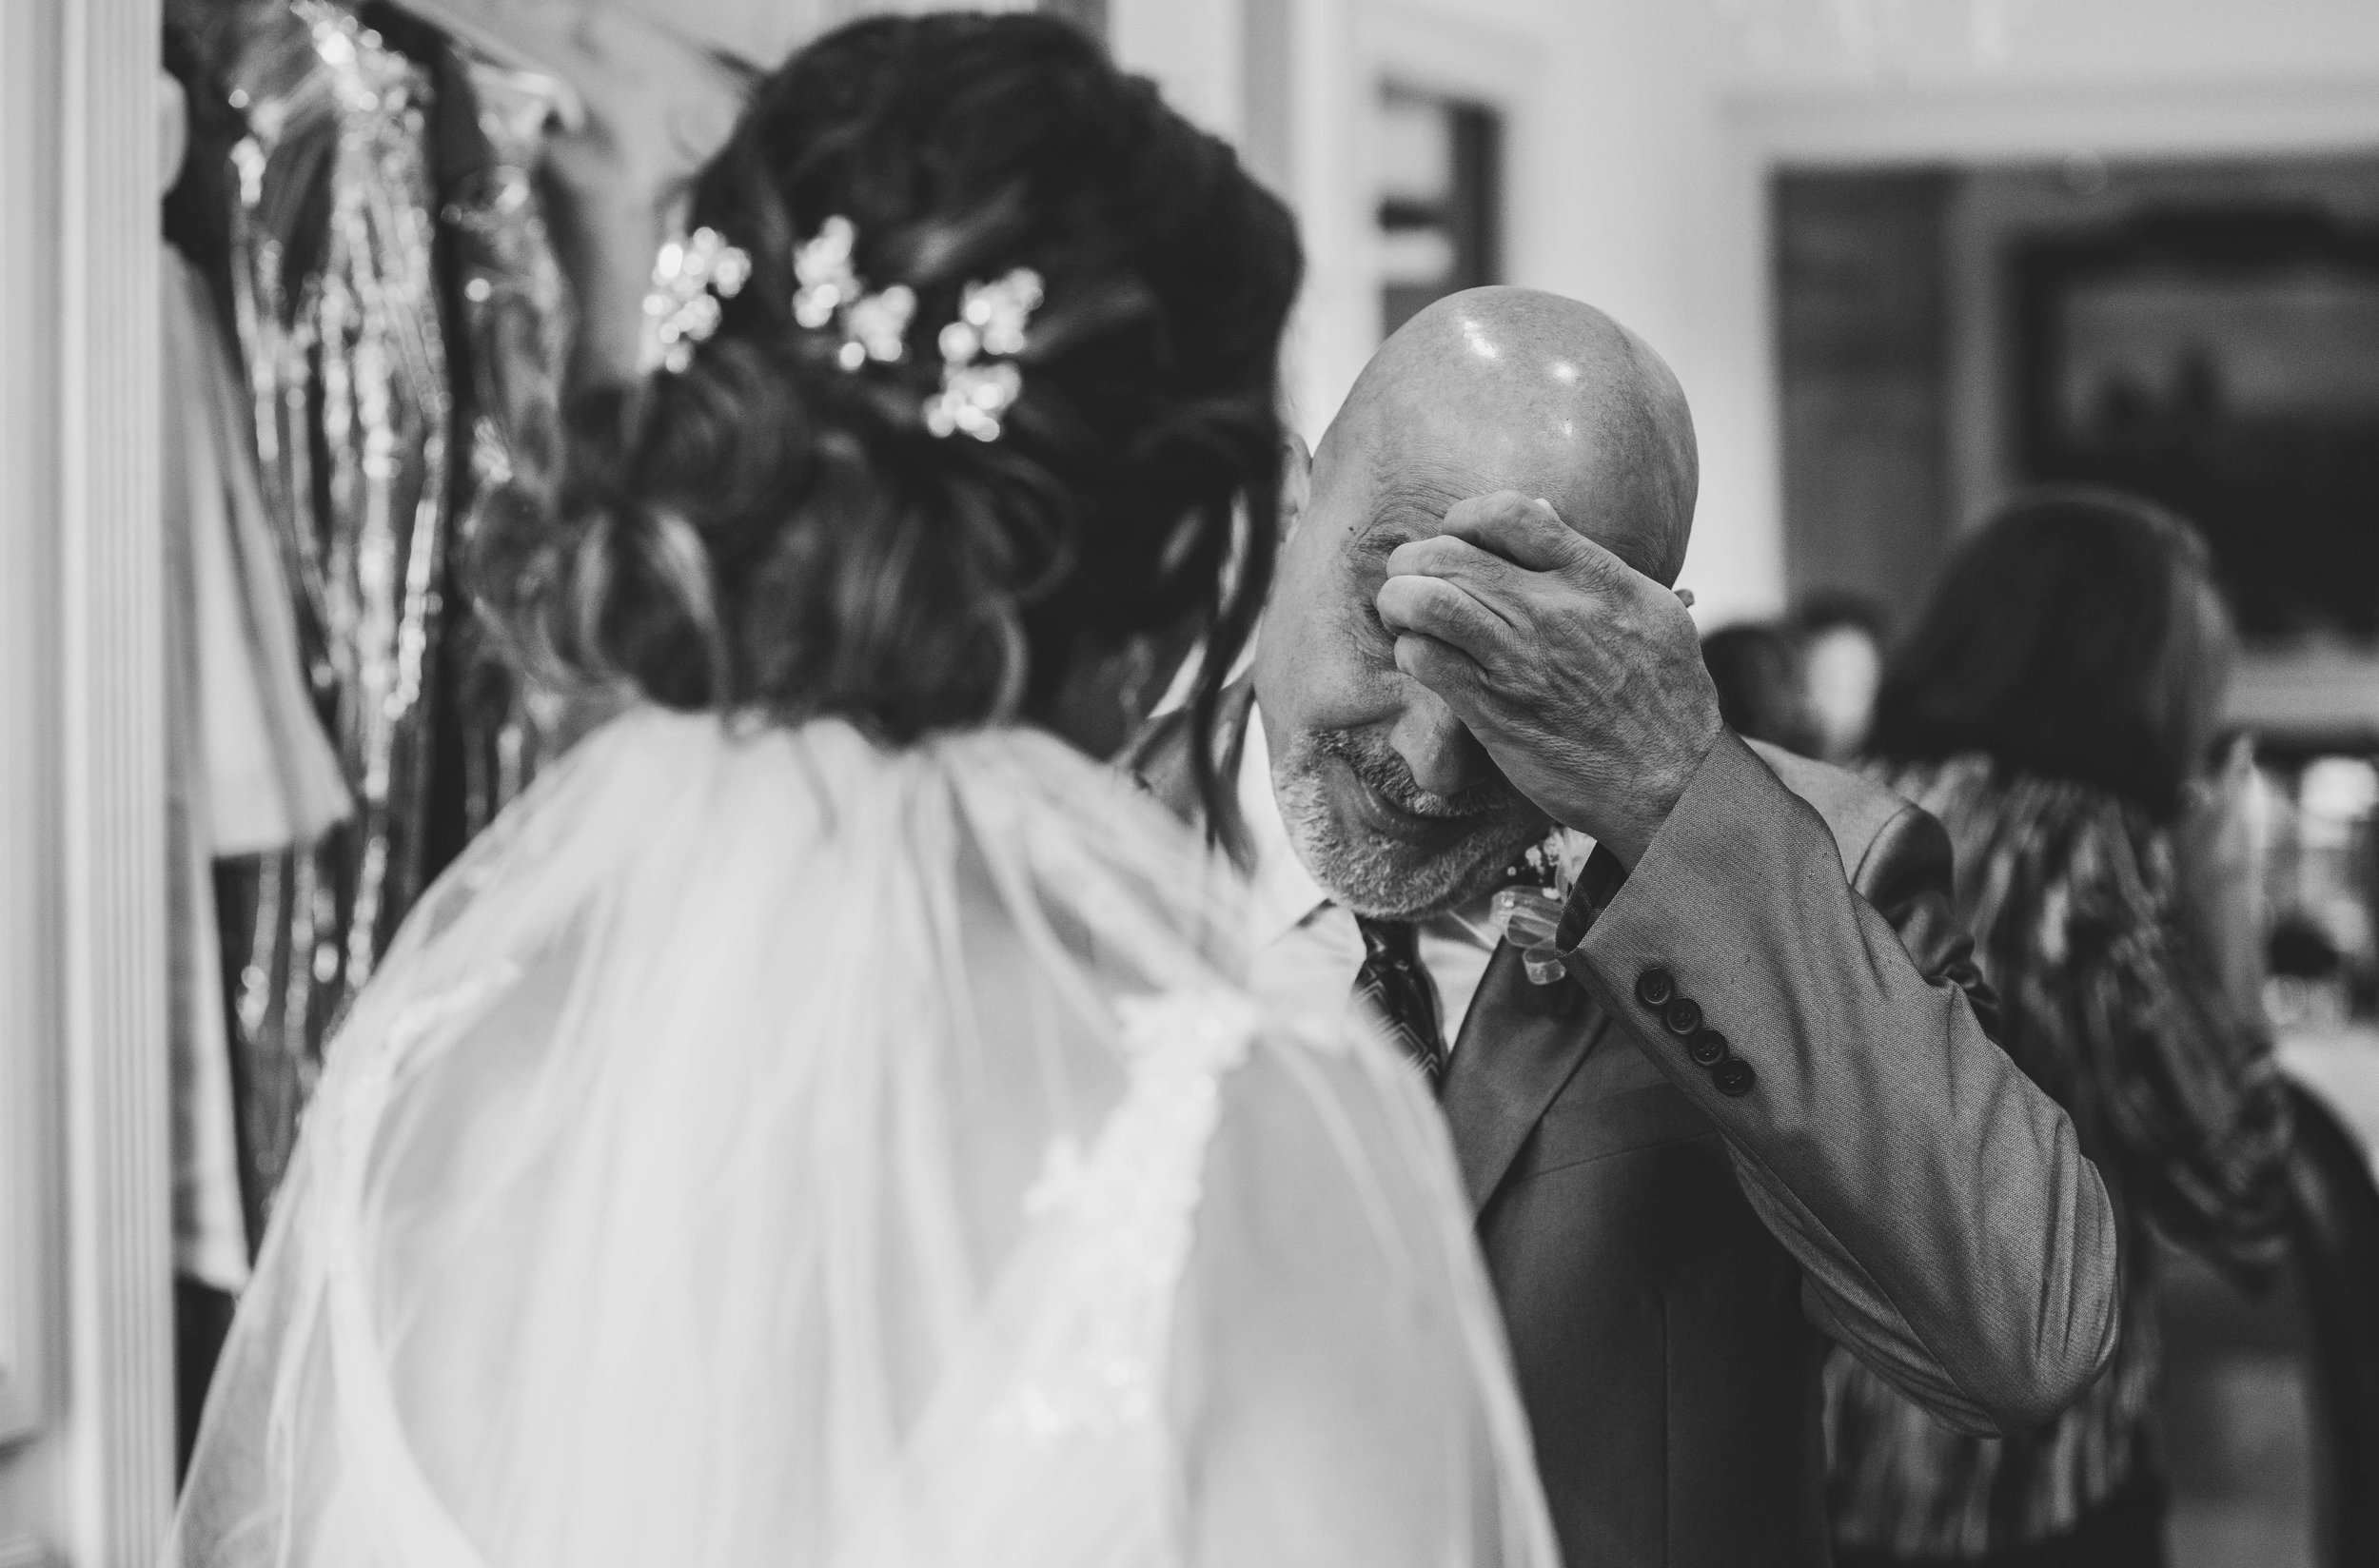 ATGI_Melissa & Jay Wedding_2017_717A5134.jpg